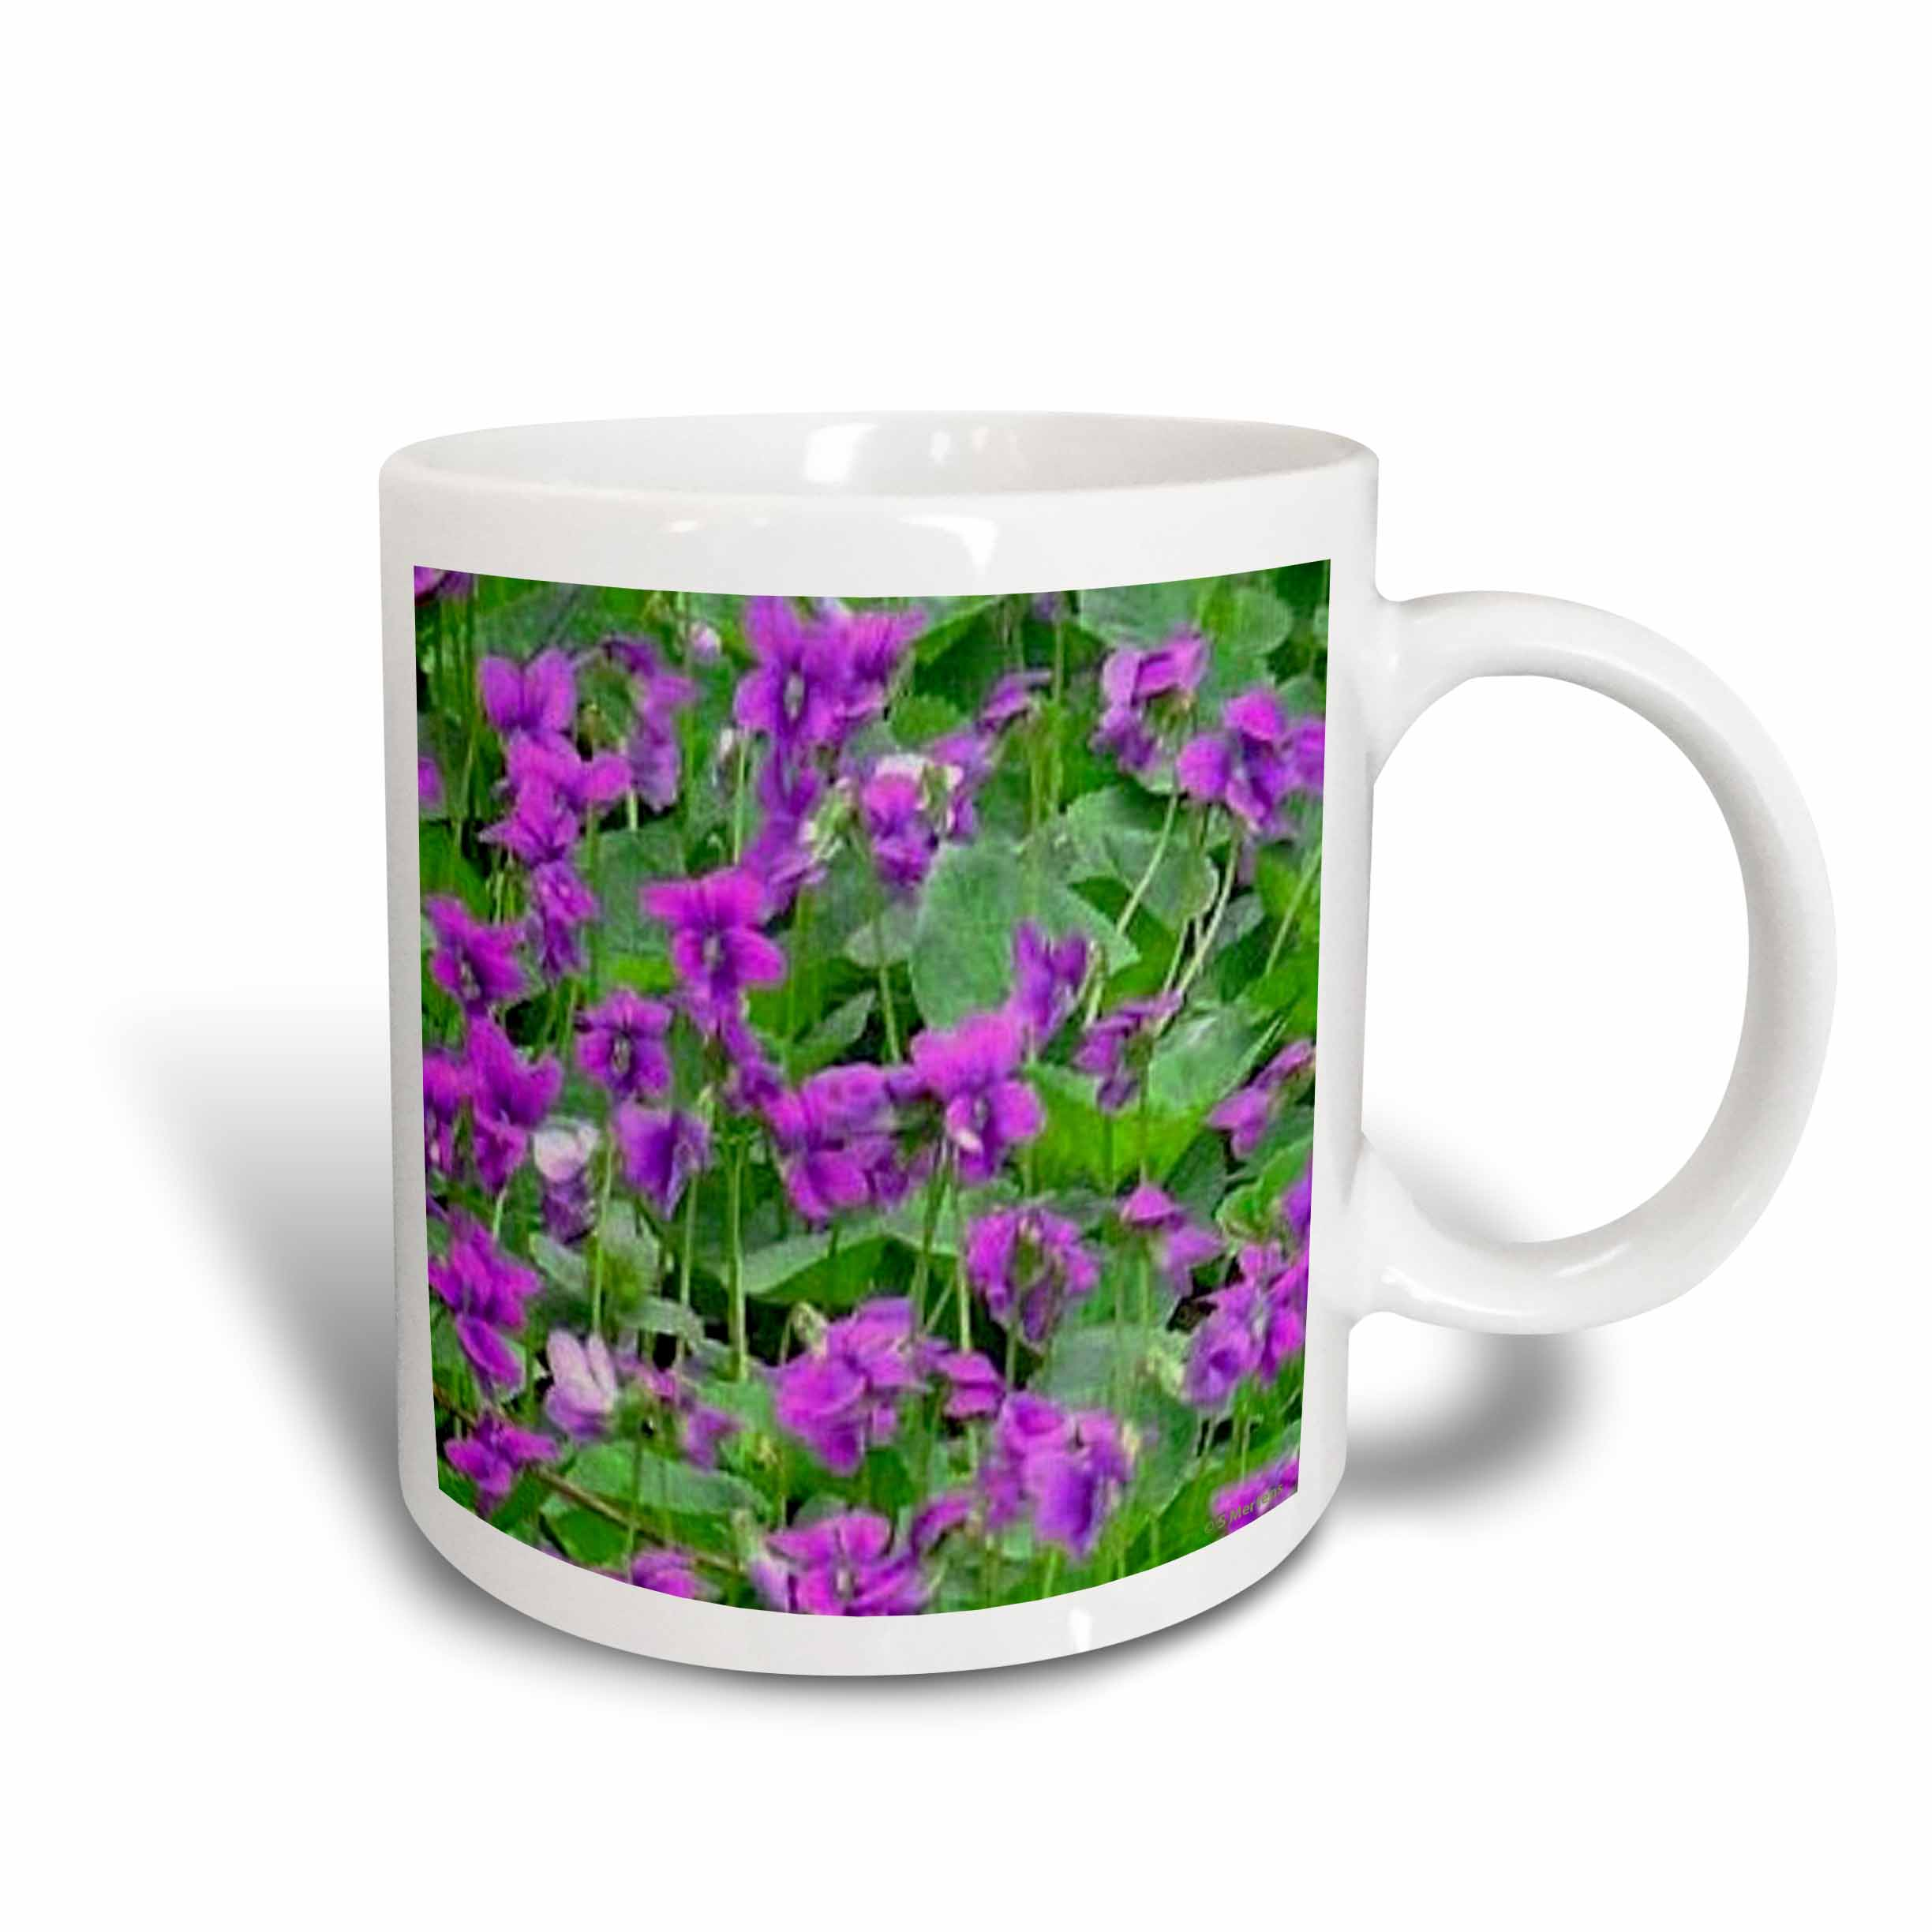 3dRose Wood Violets, Ceramic Mug, 11-ounce